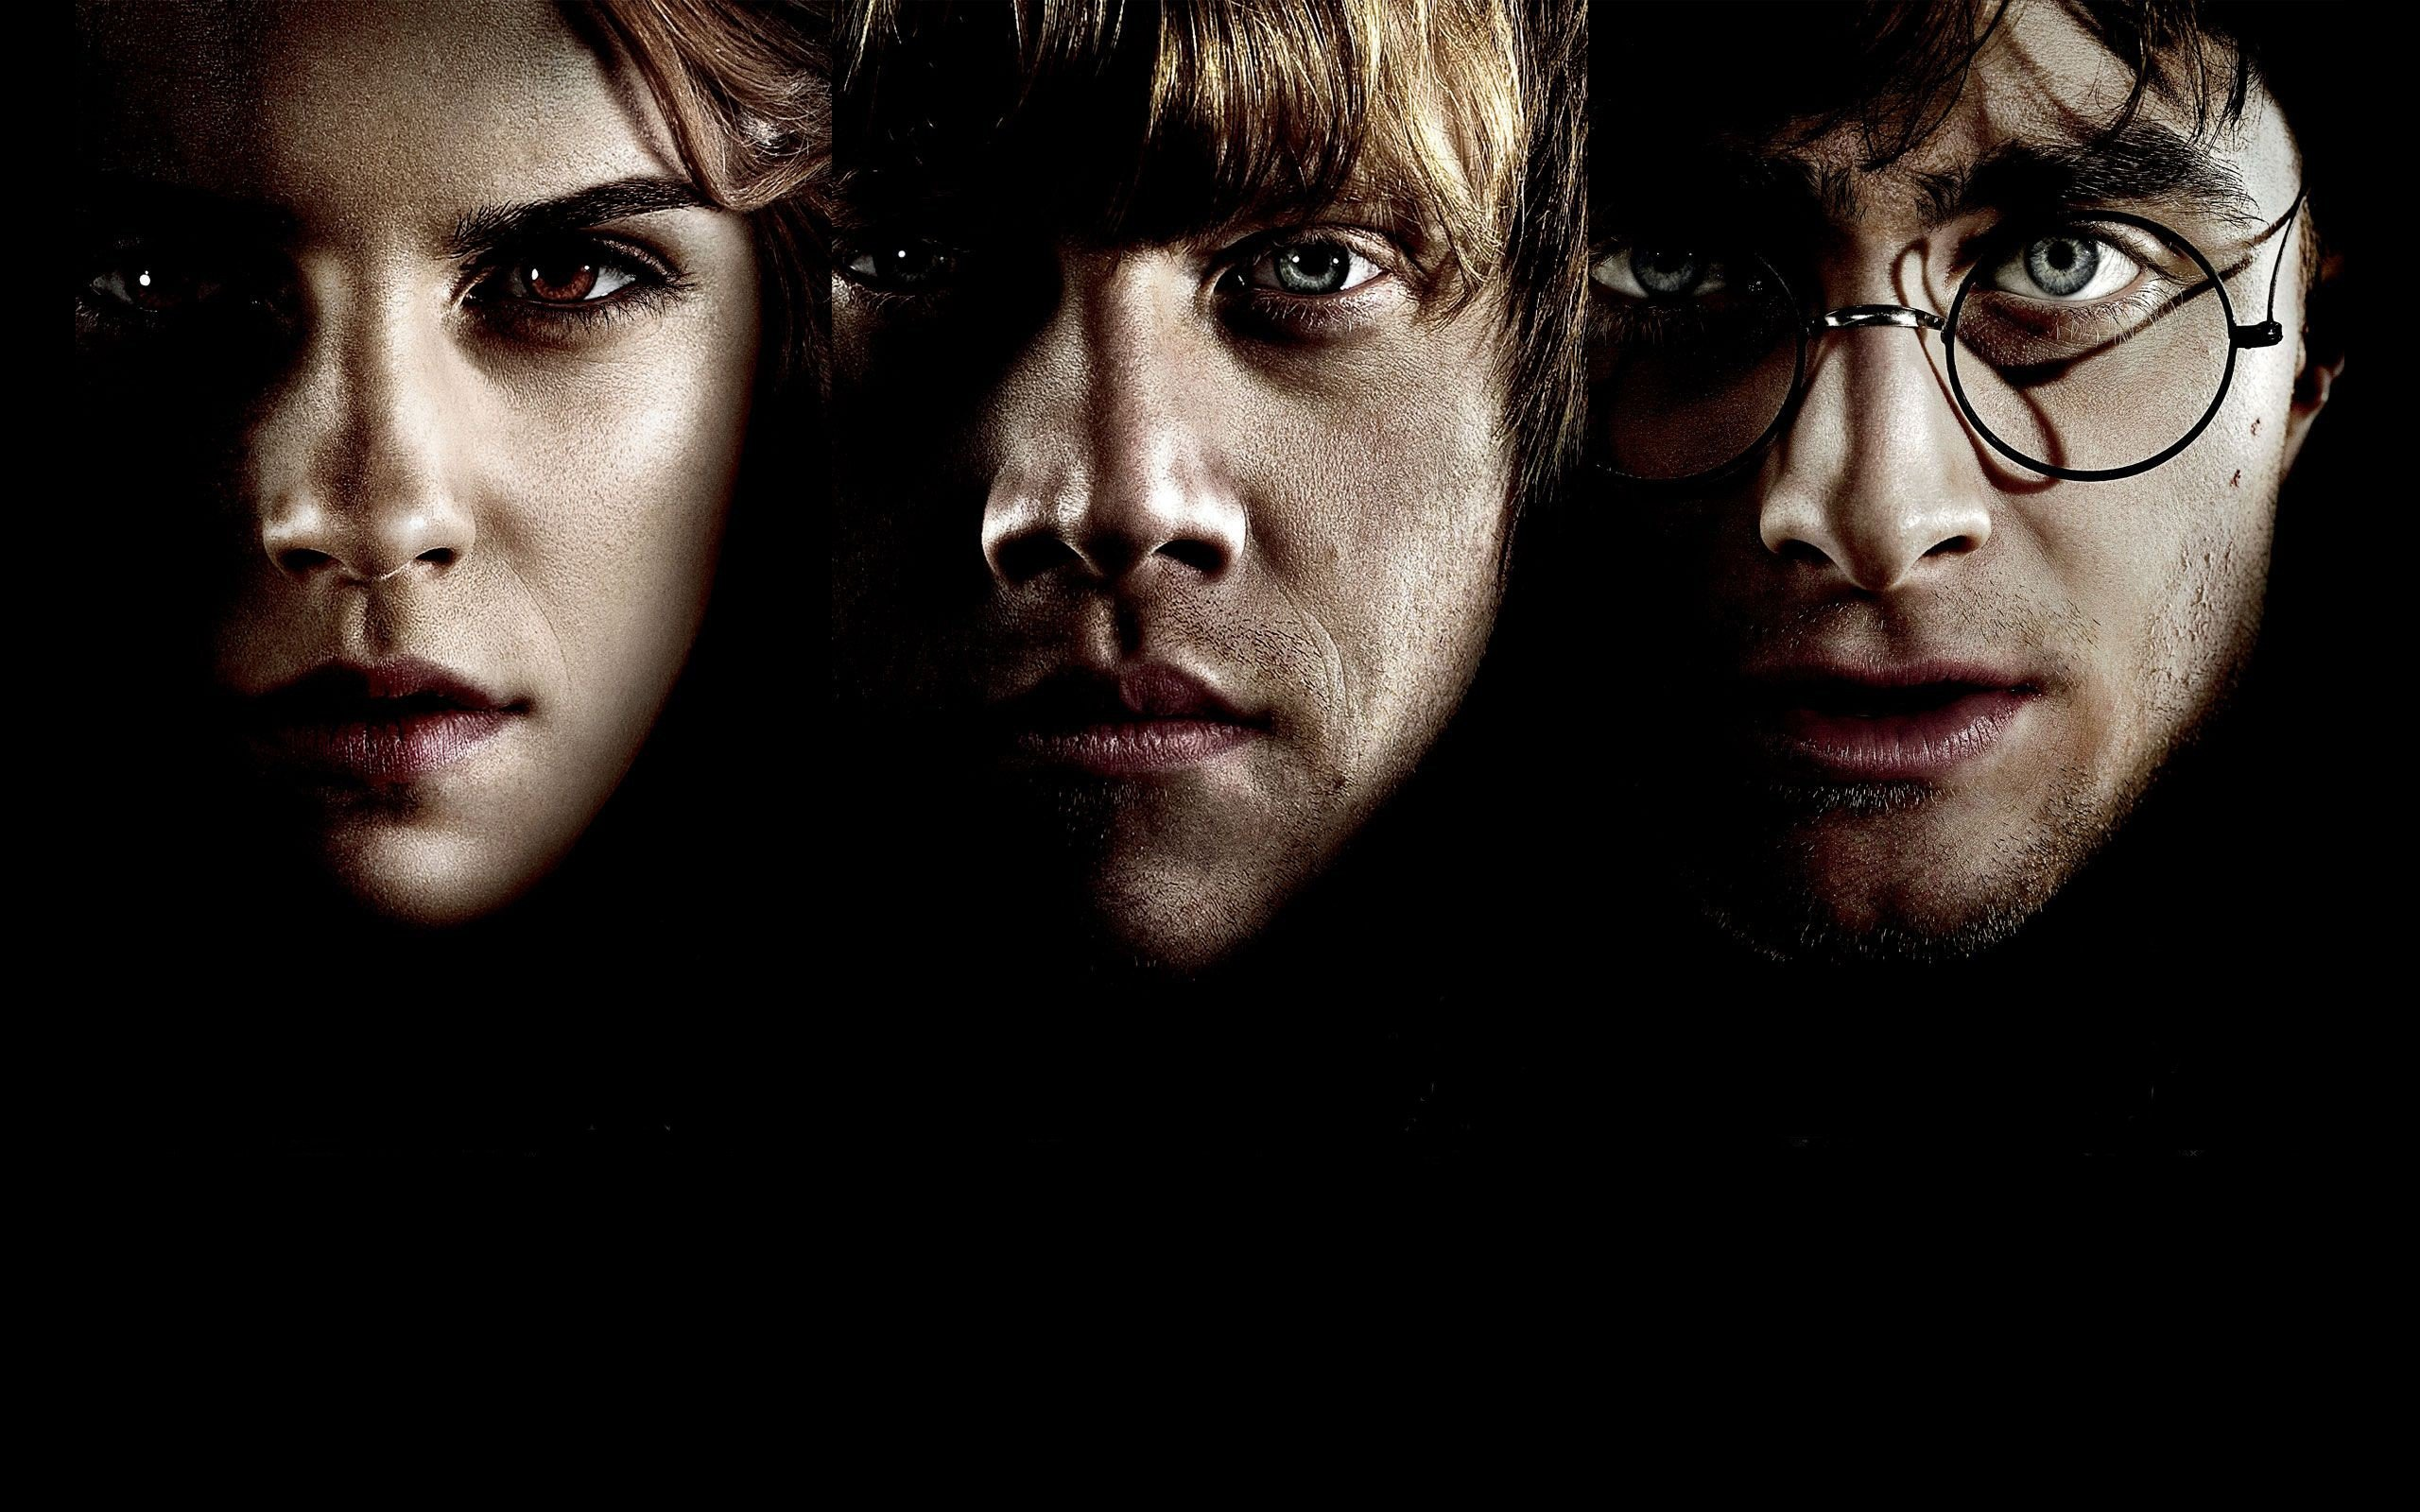 Emma watson harry potter harry potter and the deathly - Harry potter hermione granger ron weasley ...